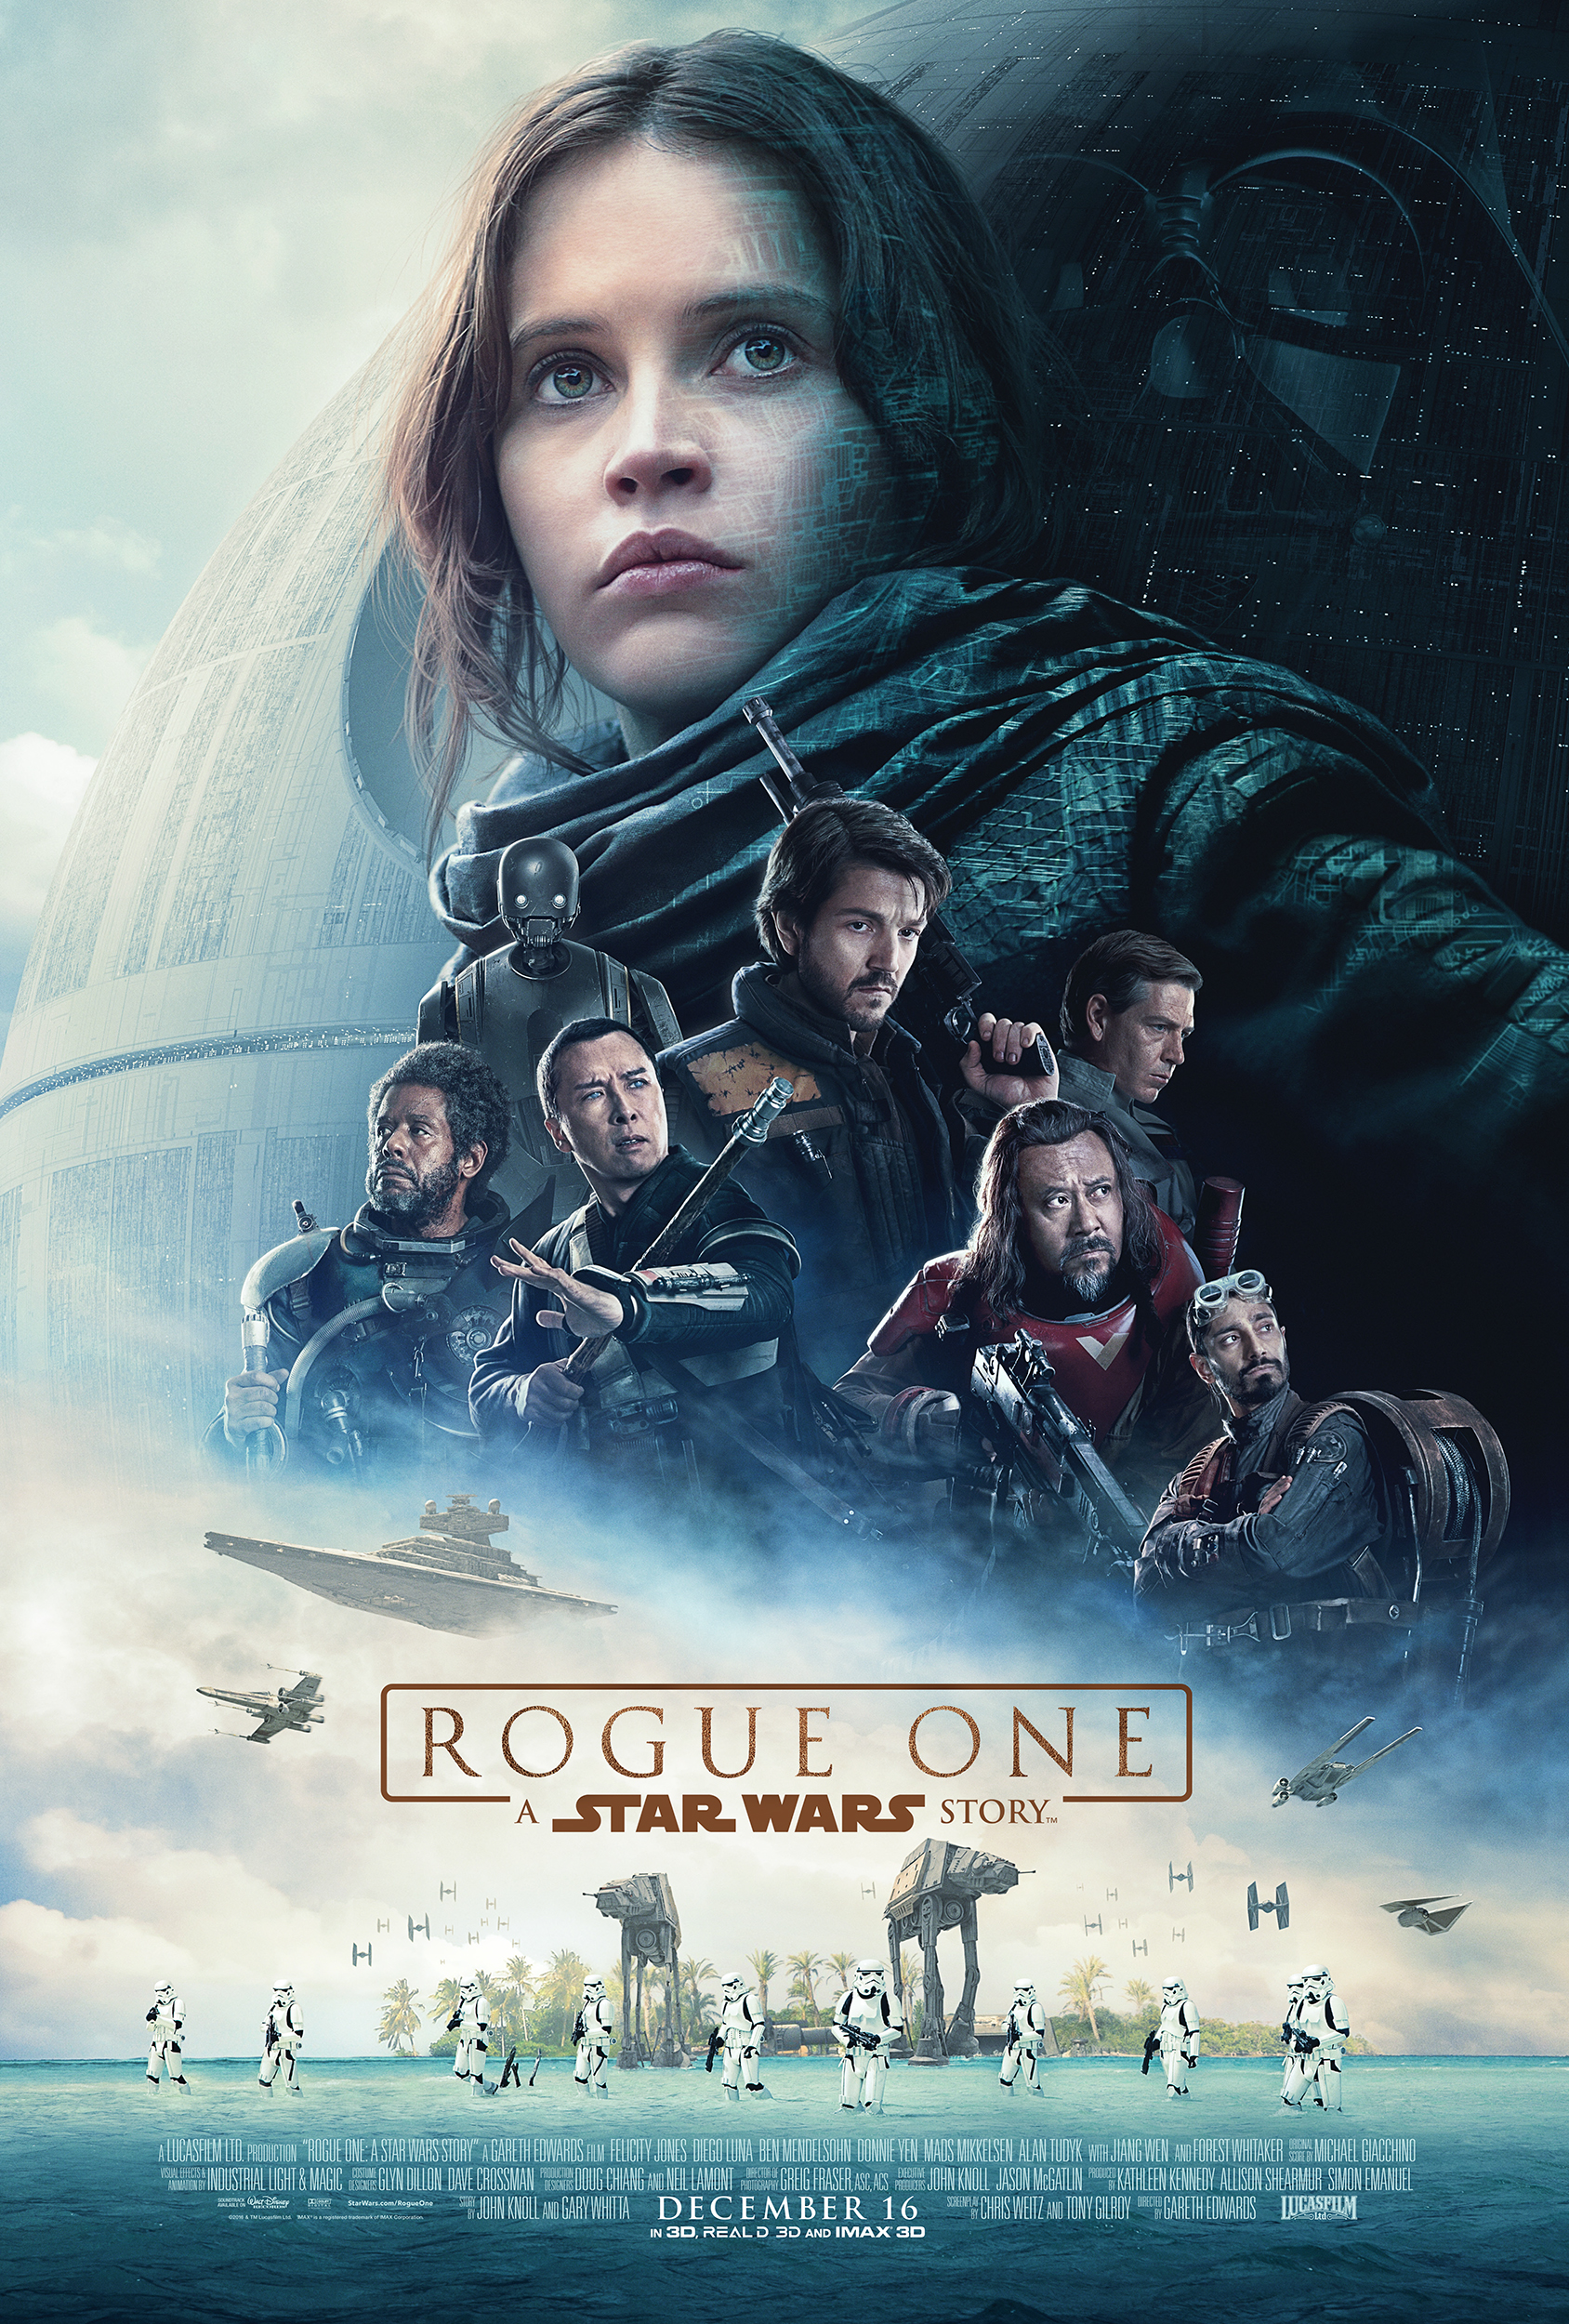 <h2>Rogue One: a Star Wars story (2015)</h2>Neal Scanlan supervised the creature department and Göran worked as part of his crew applying prosthetic makeups on-set.